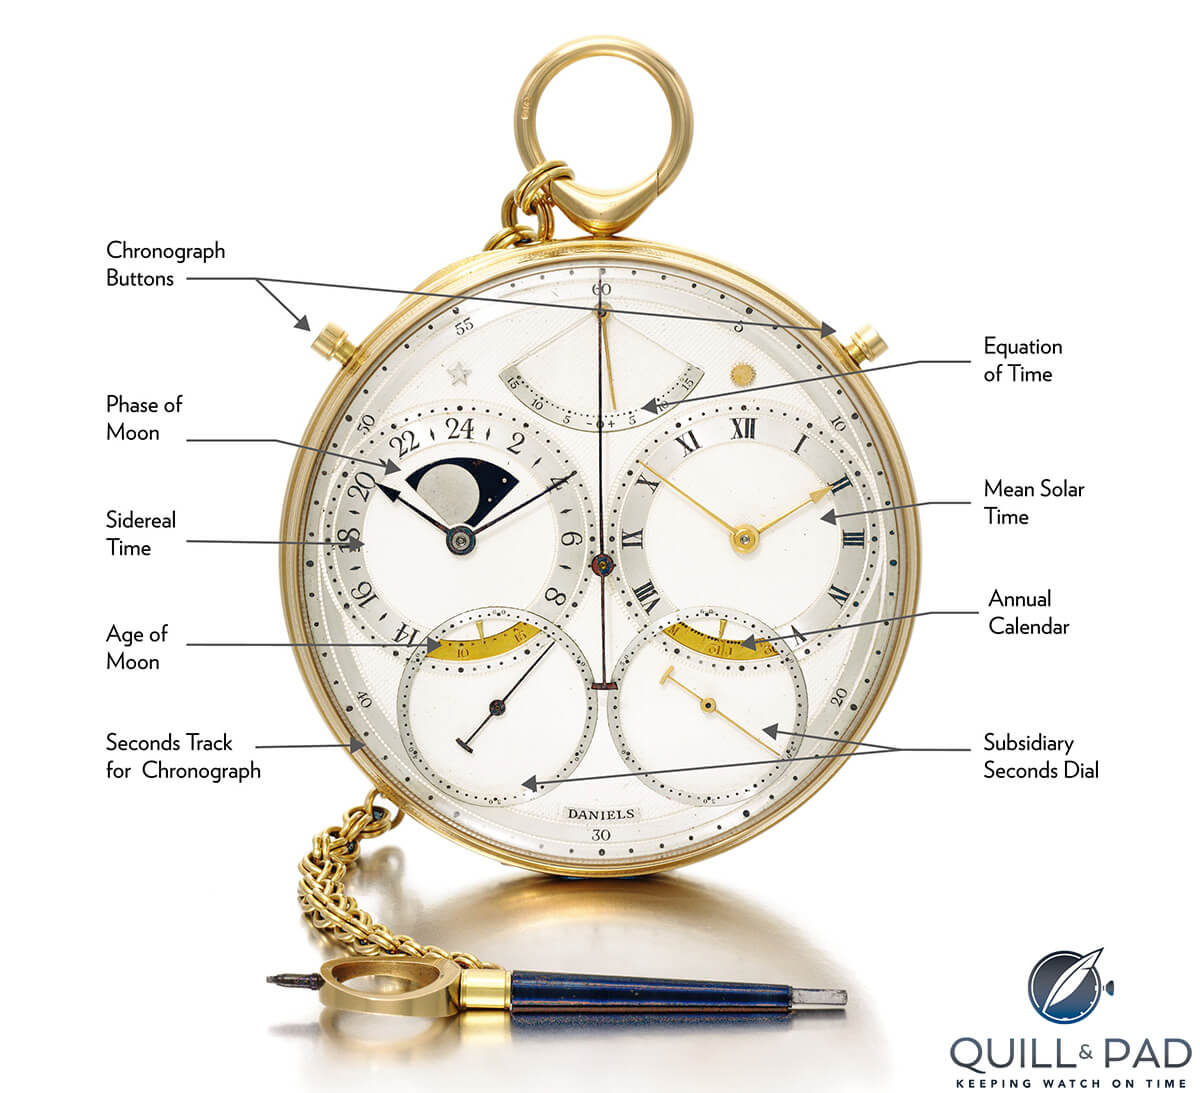 Functions and indications of the George Daniels Space Travellers' watch